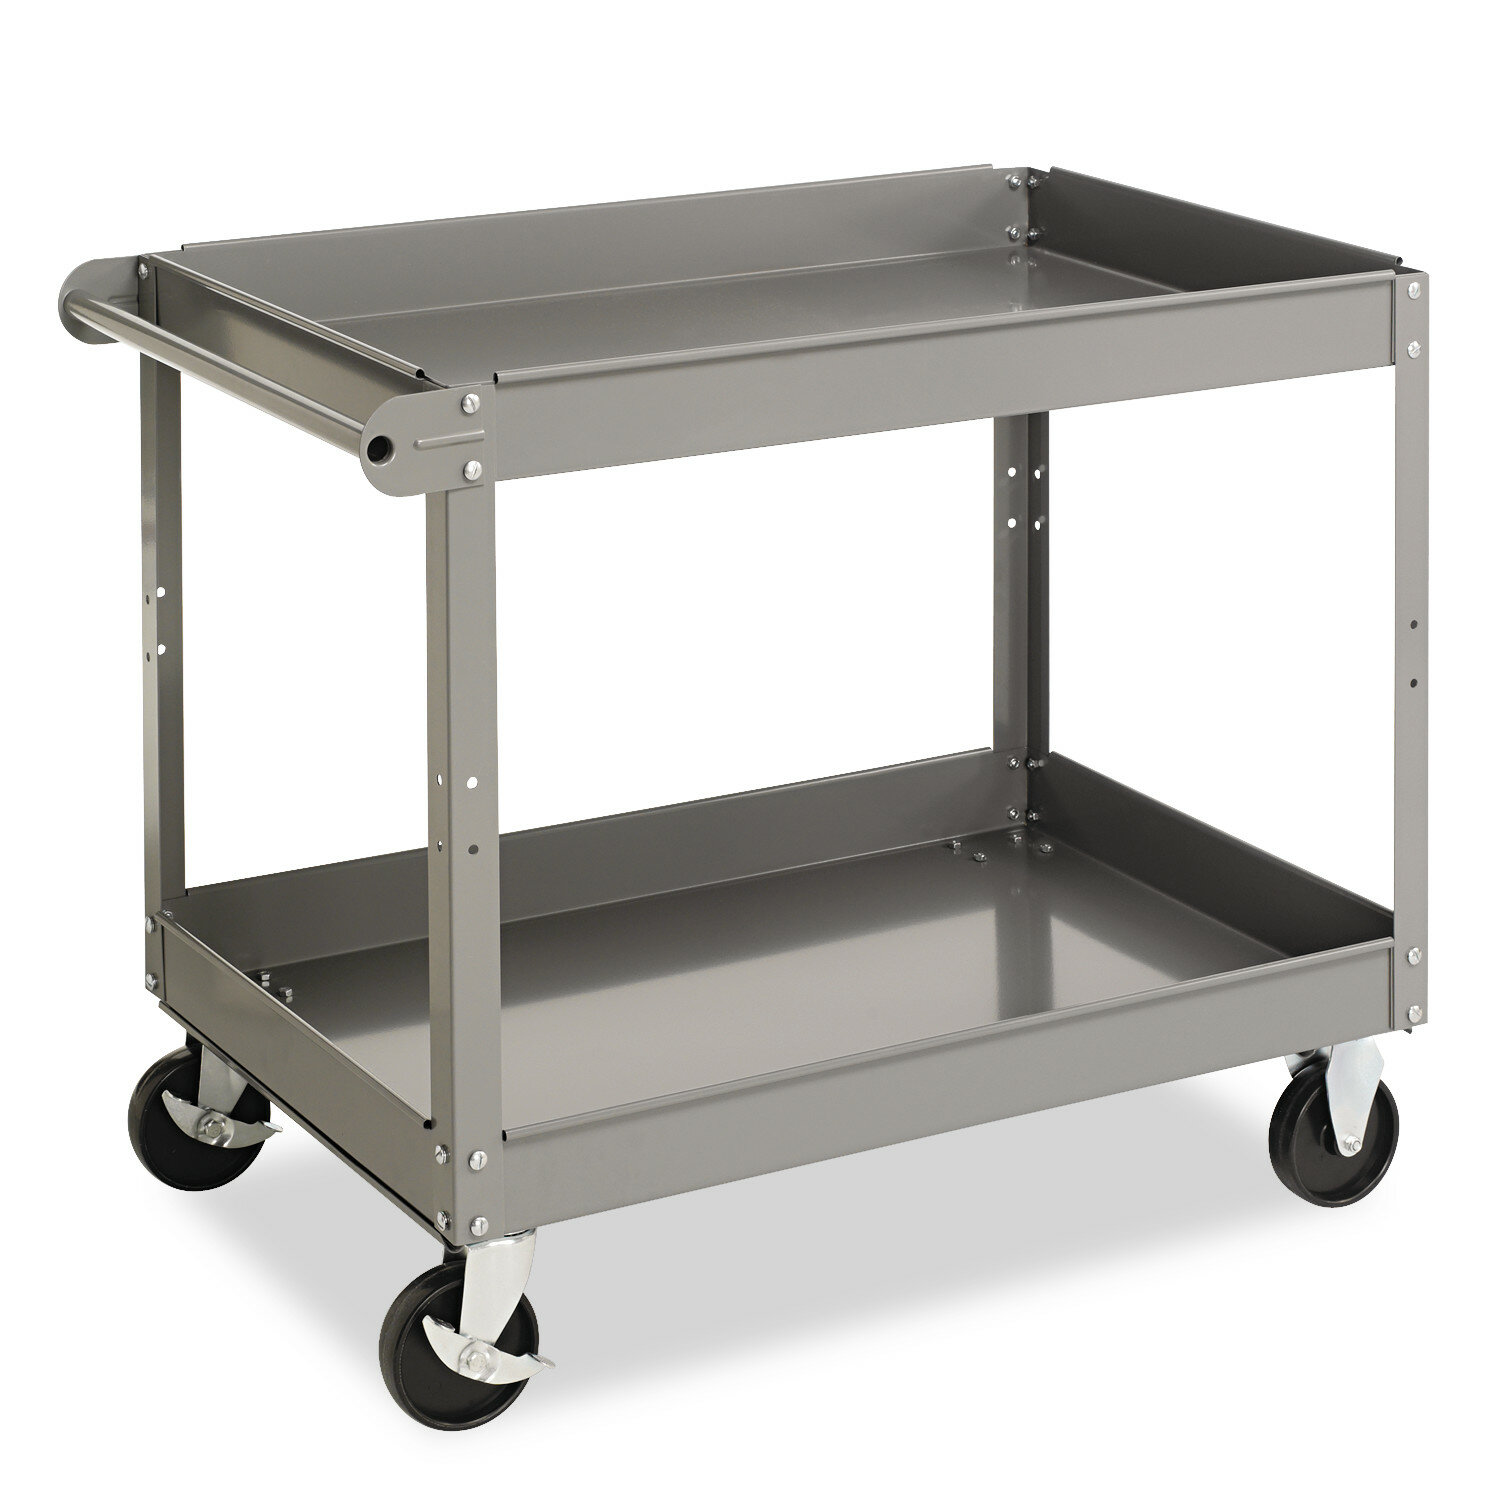 Tennsco Two Shelf Metal Utility Cart Reviews Wayfair